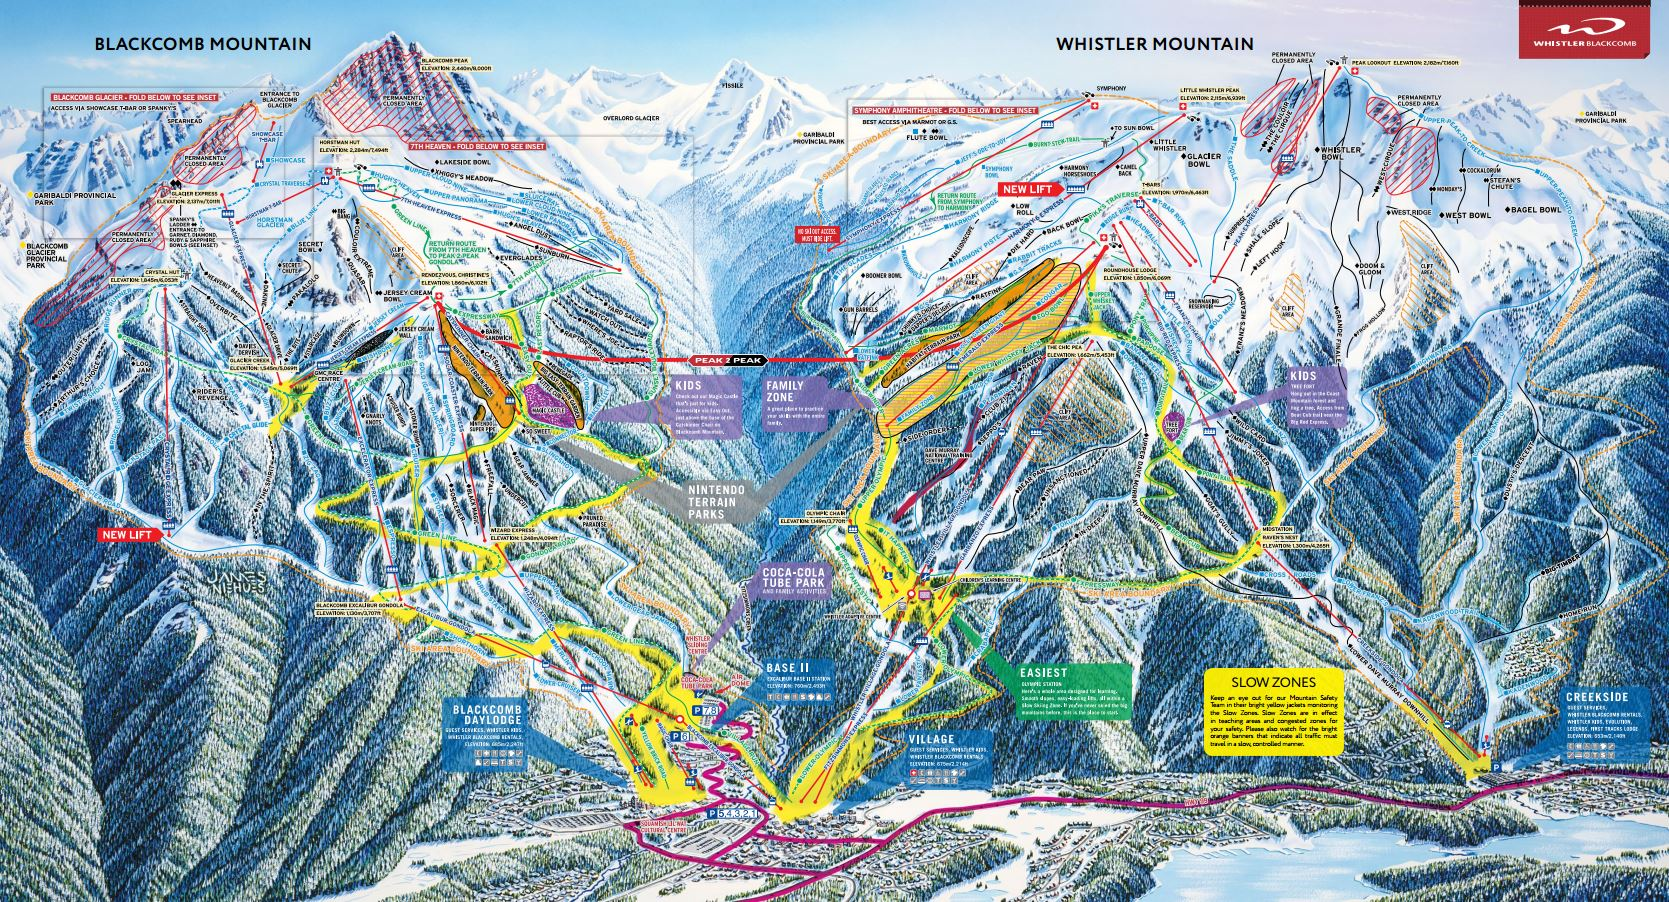 whistler-blackcomb-trail-map